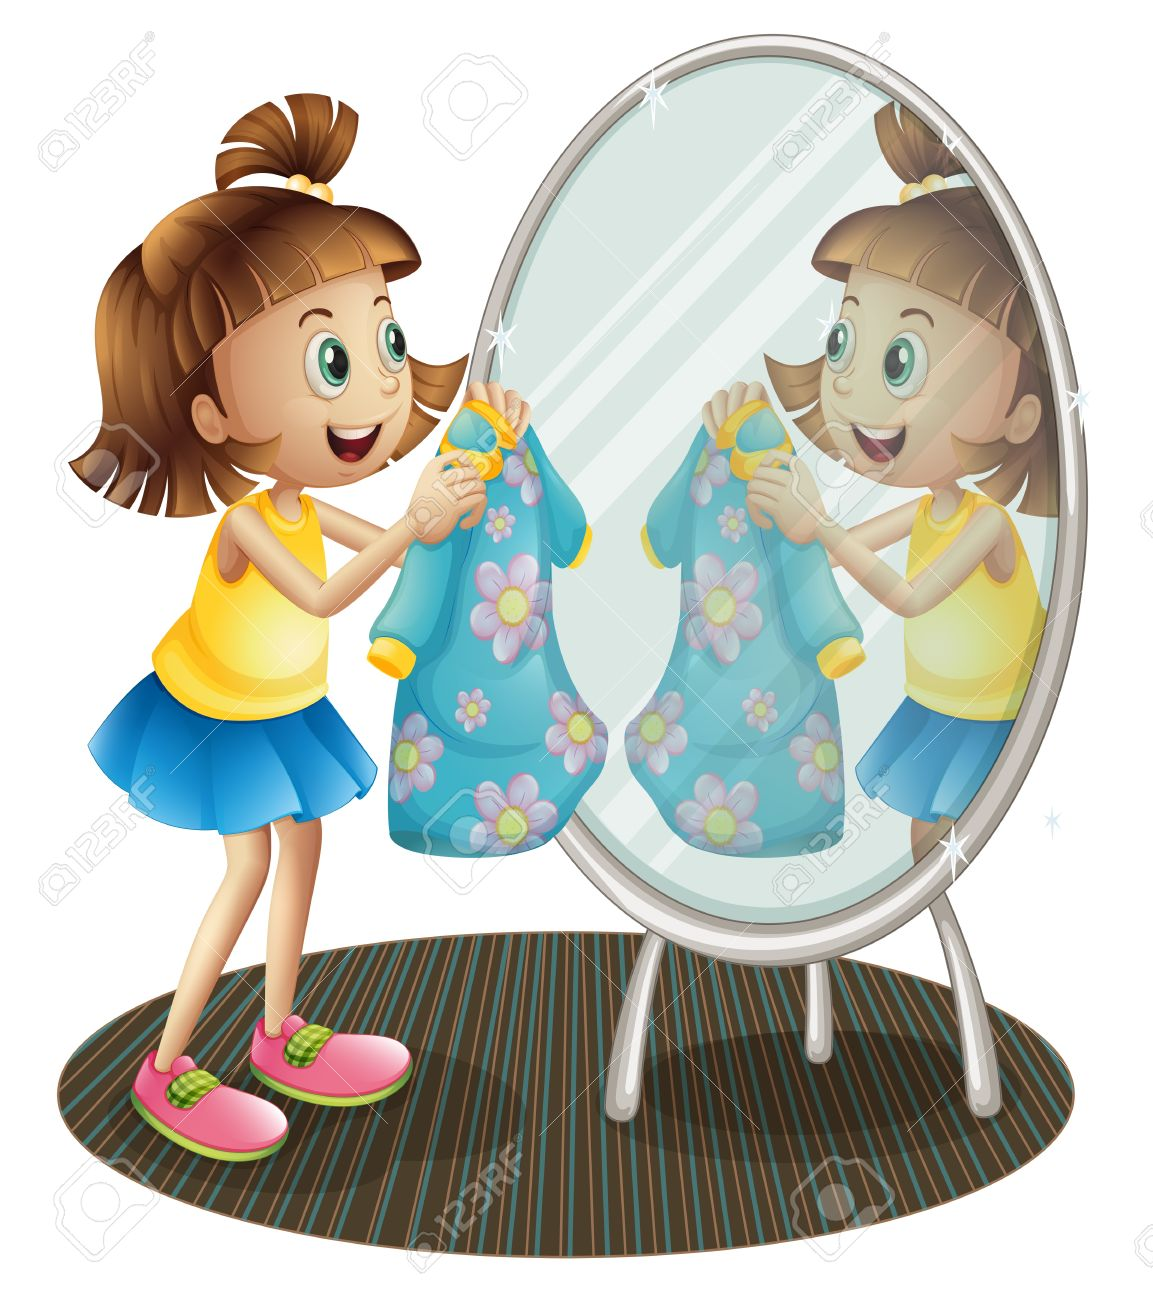 Clipart Mirror Images & Stock Pictures. Royalty Free Clipart ...